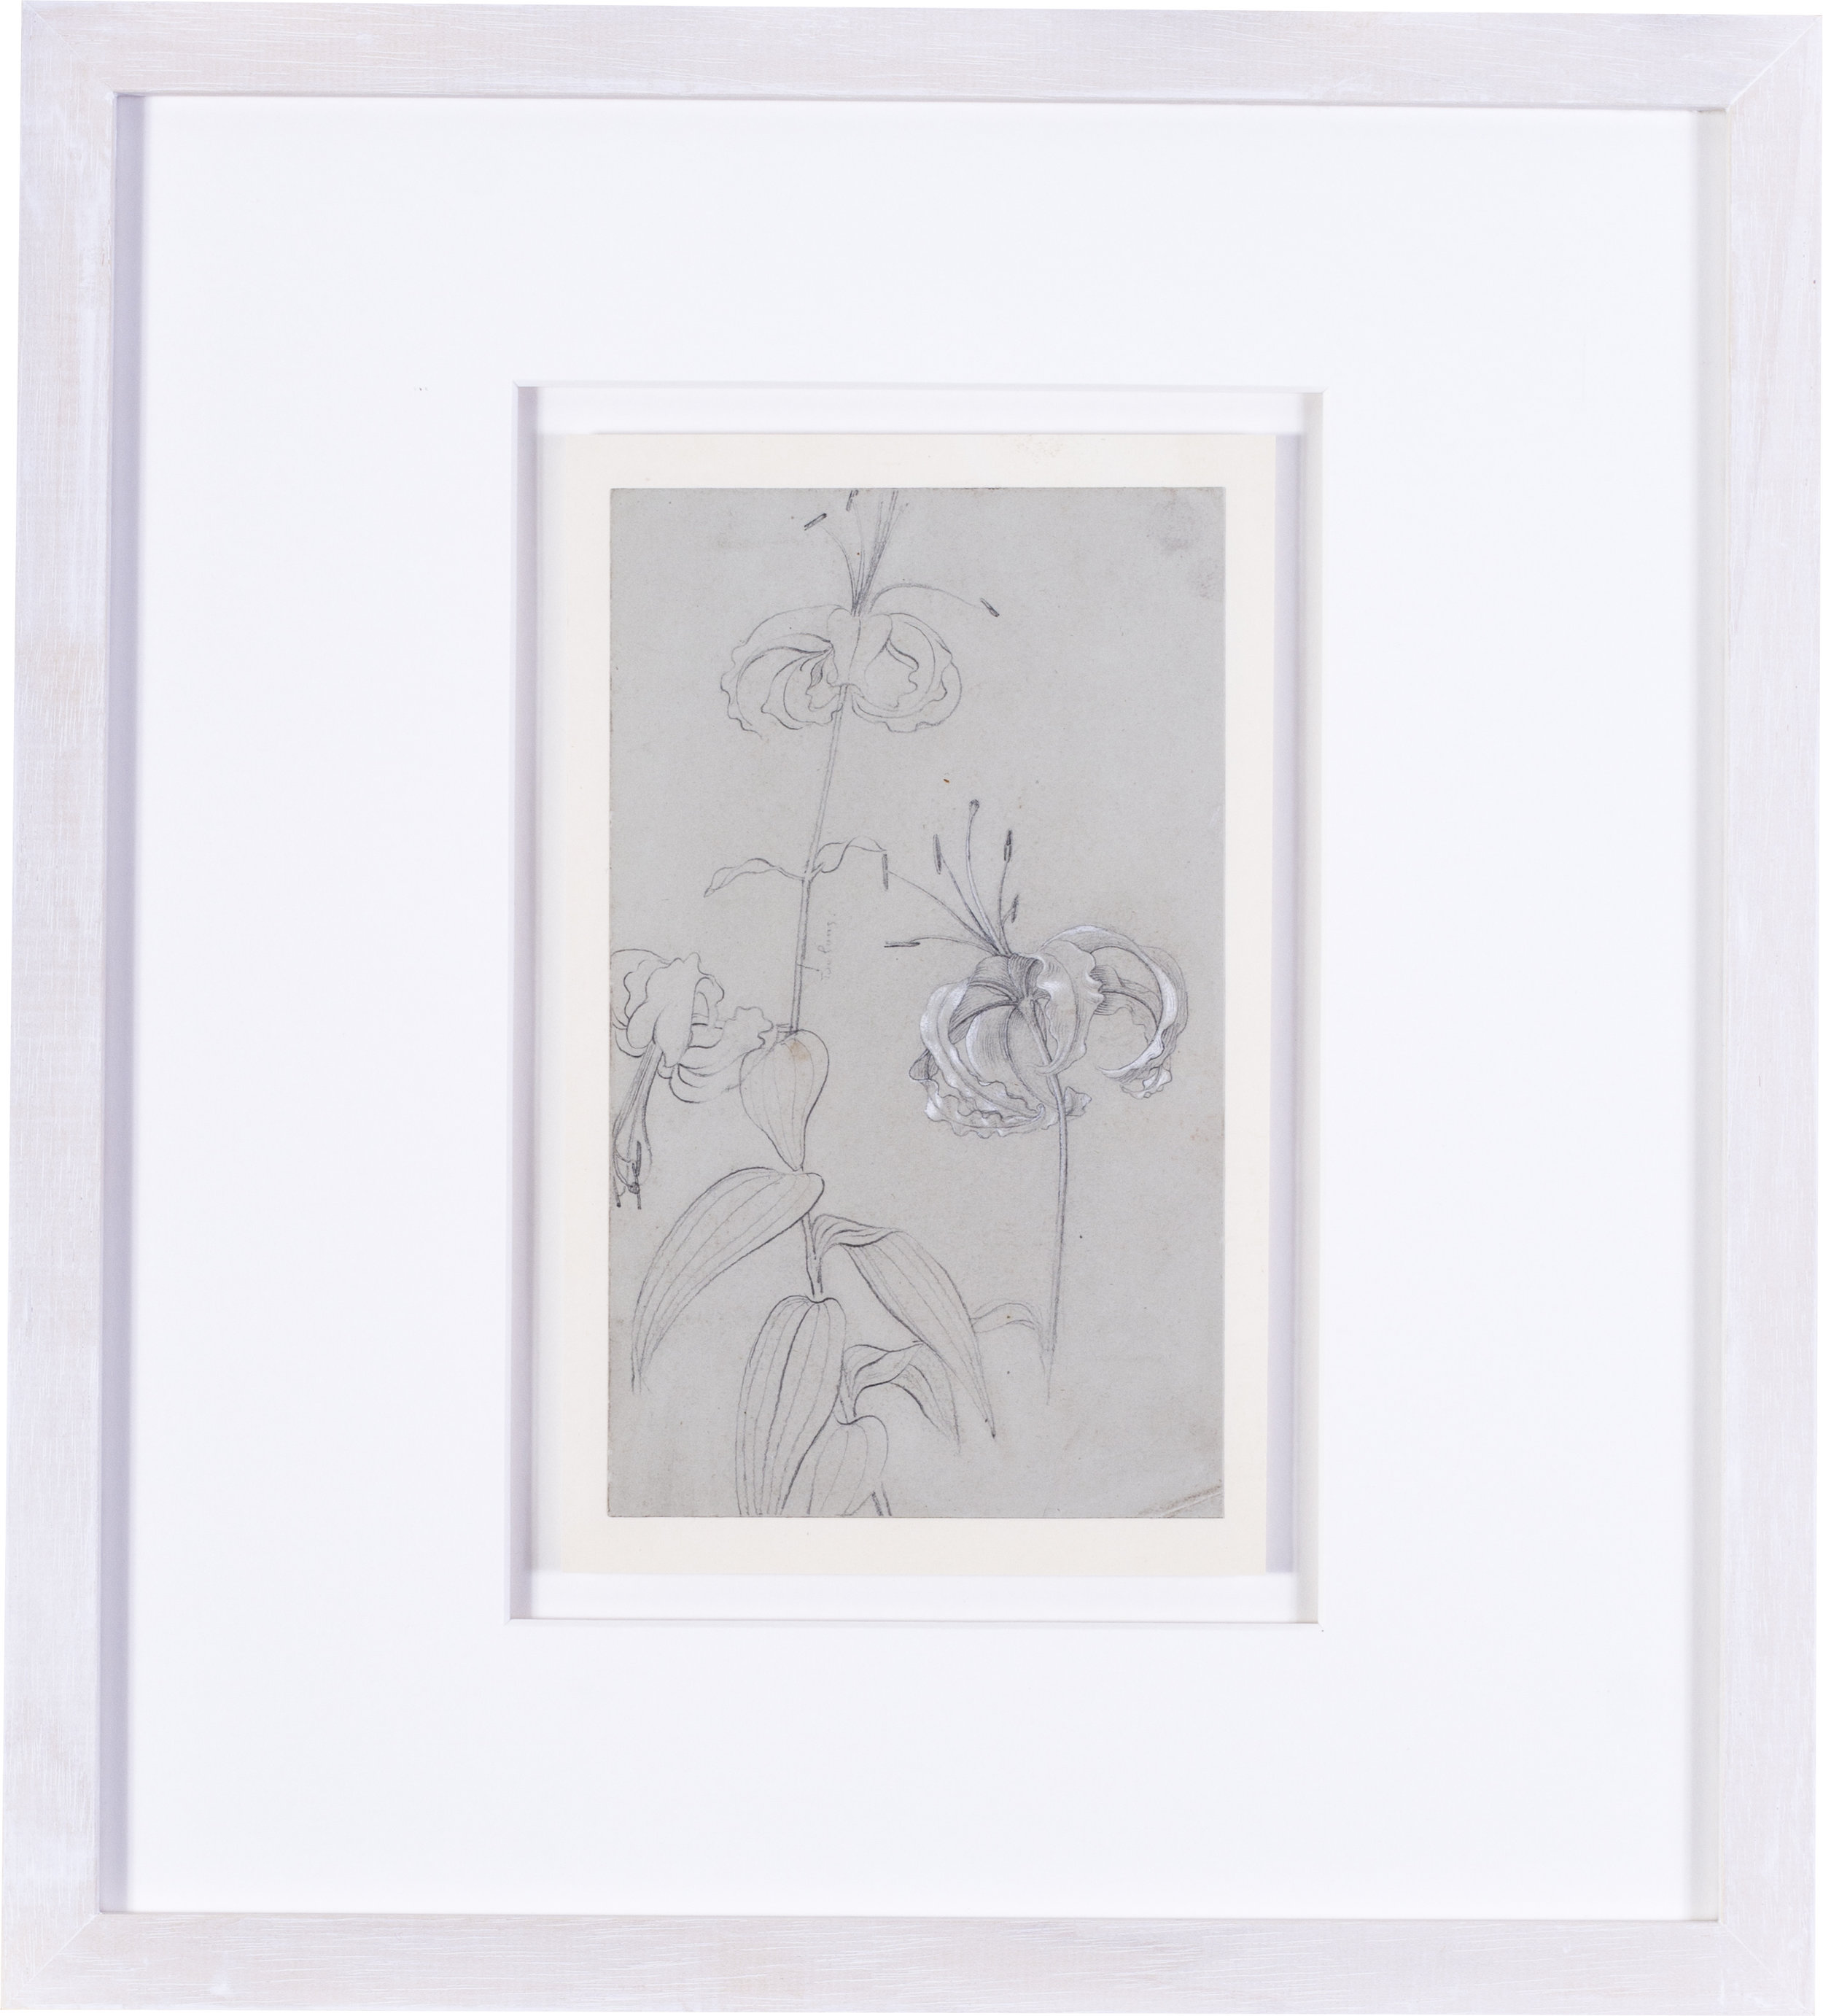 Lilies    pencil on grey paper heightened with white  inscribed 'too long' (beside a stalk)  9 x 5.3/8 in. (23 x 13.5 cm.)  Provenance: The Clayton-Stamm Collection.  Dominic Winter, Cirencester, 8thNovember 2018, lot 464  £2,000